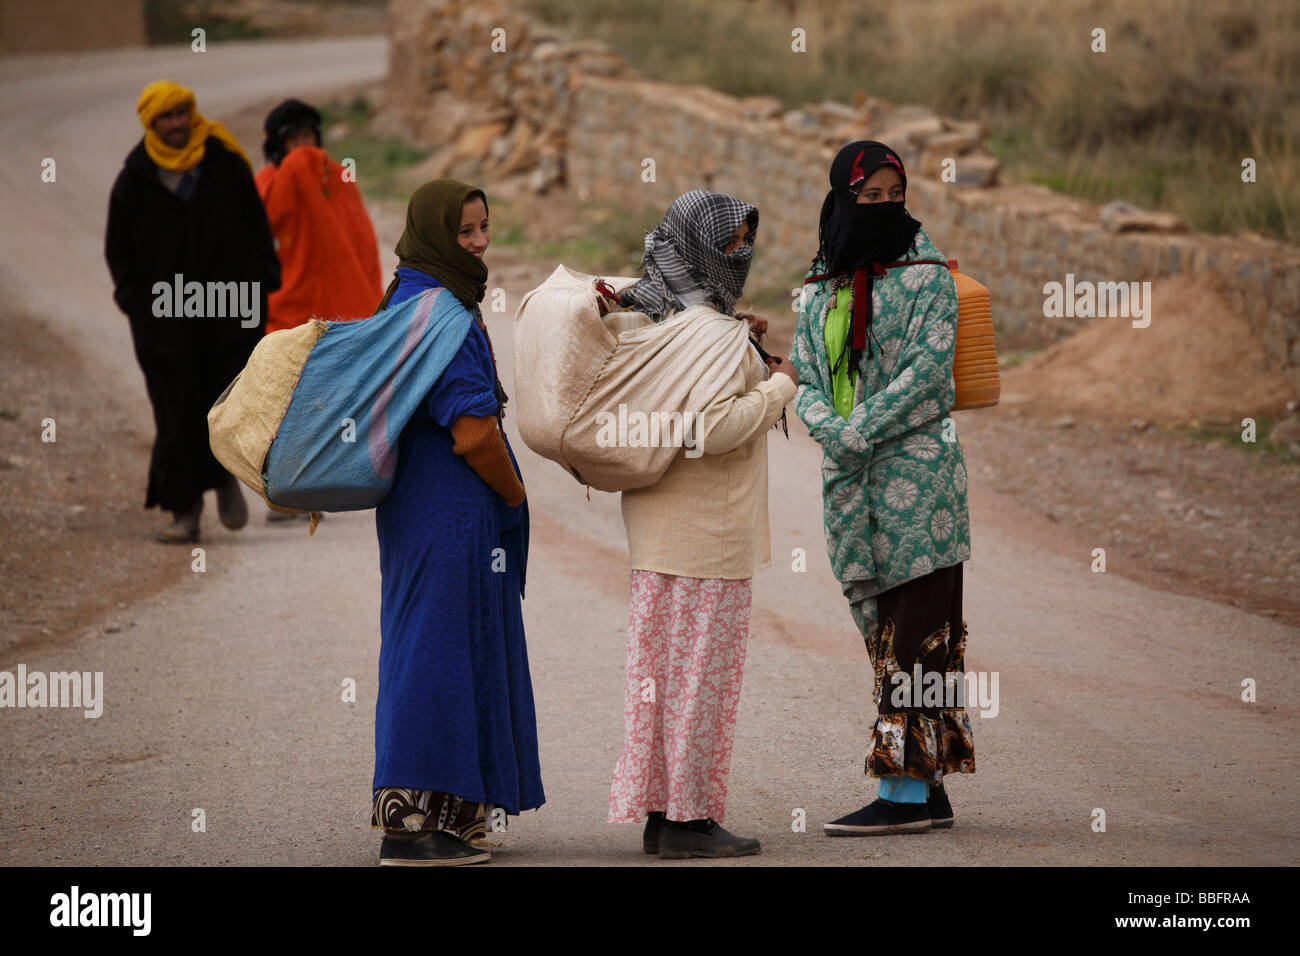 Africa, North Africa, Morocco, Atlas Region, Todra Gorge, Tamtatouchte Village, Berber Women - Stock Image